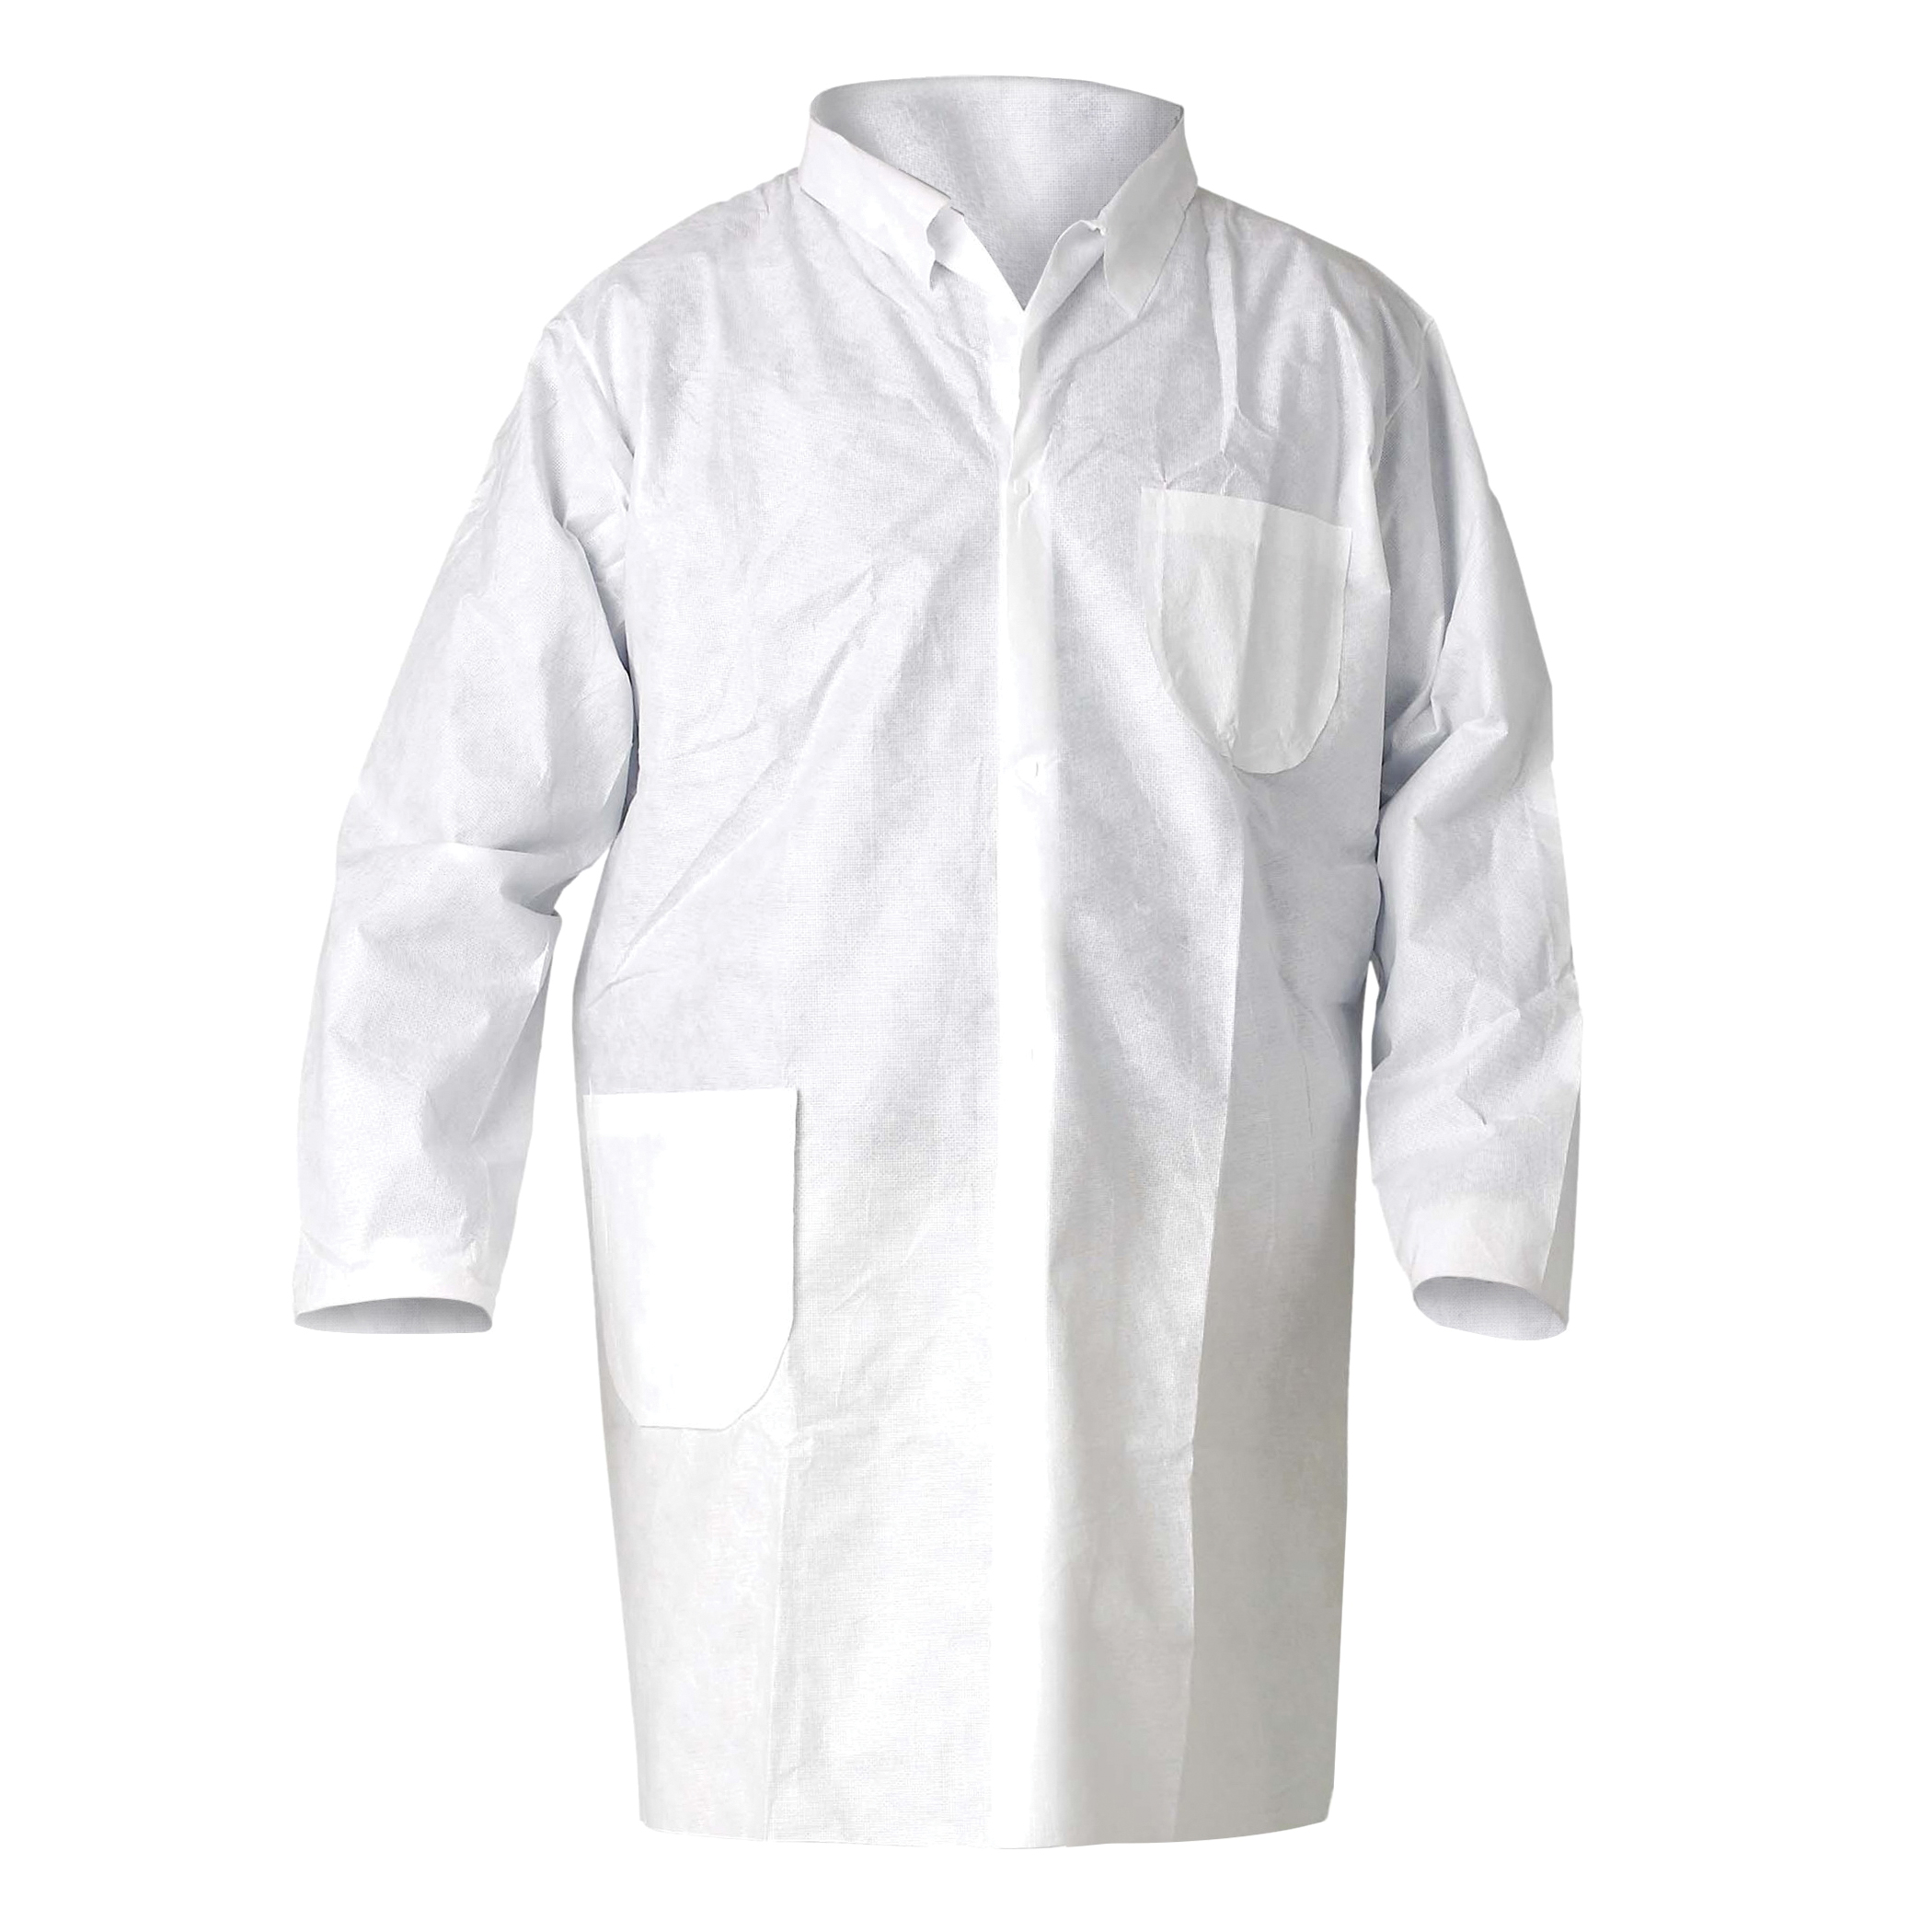 KleenGuard* 09829 A70 Spray Protection Smock, XL, Yellow, 1.5 mil Polyethylene Coated Fabric, 44 in L, Front Tie Closure, Specifications Met: TAA Complaint, NFPA 99